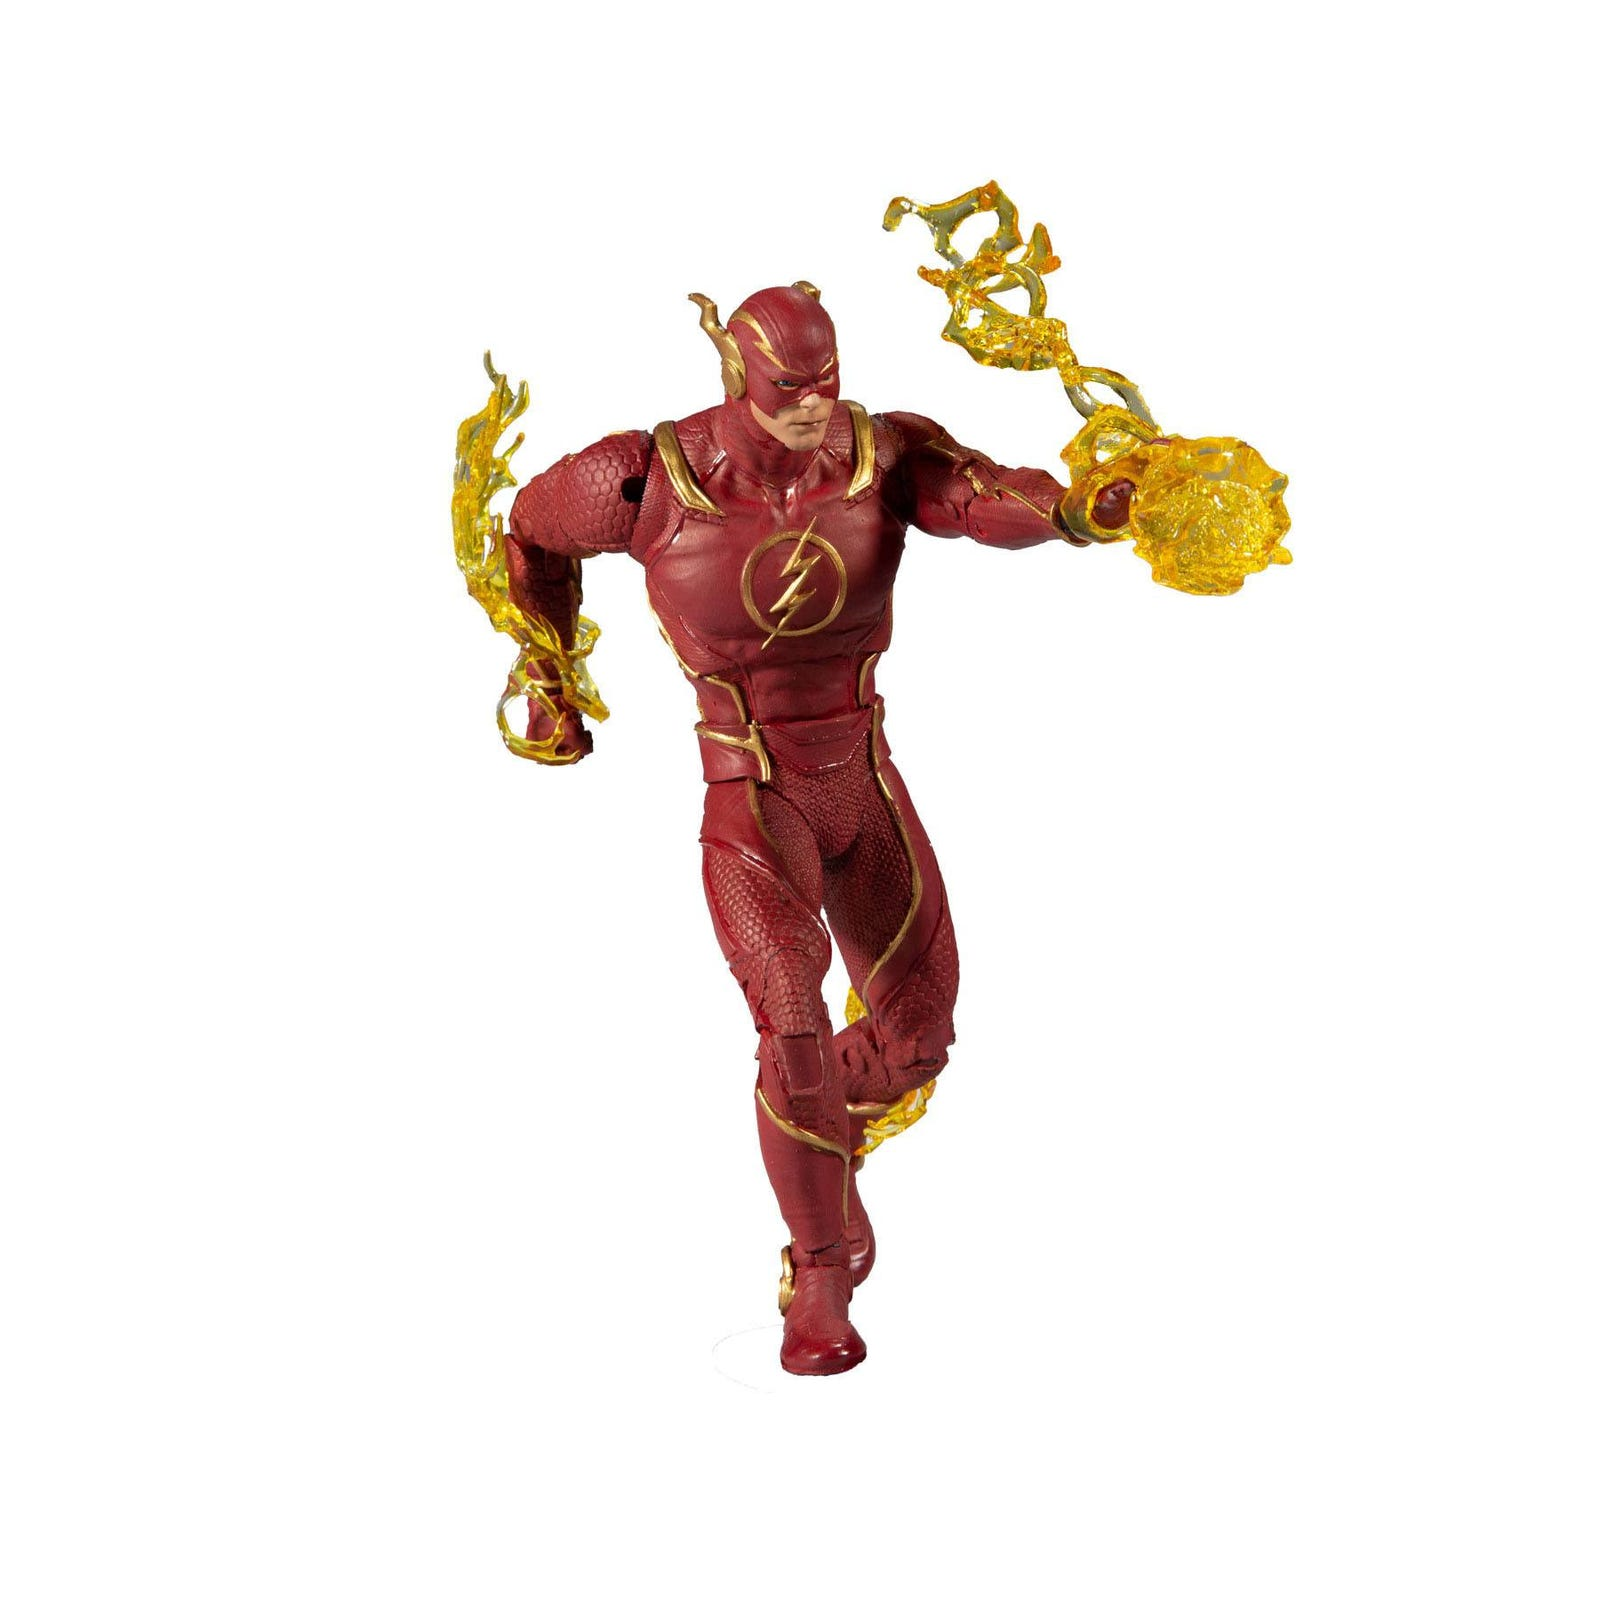 DC Multiverse Actionfigur The Flash: Injustice 2 18 cm - Preorder Mai 2021 MCF15356-9 787926153569